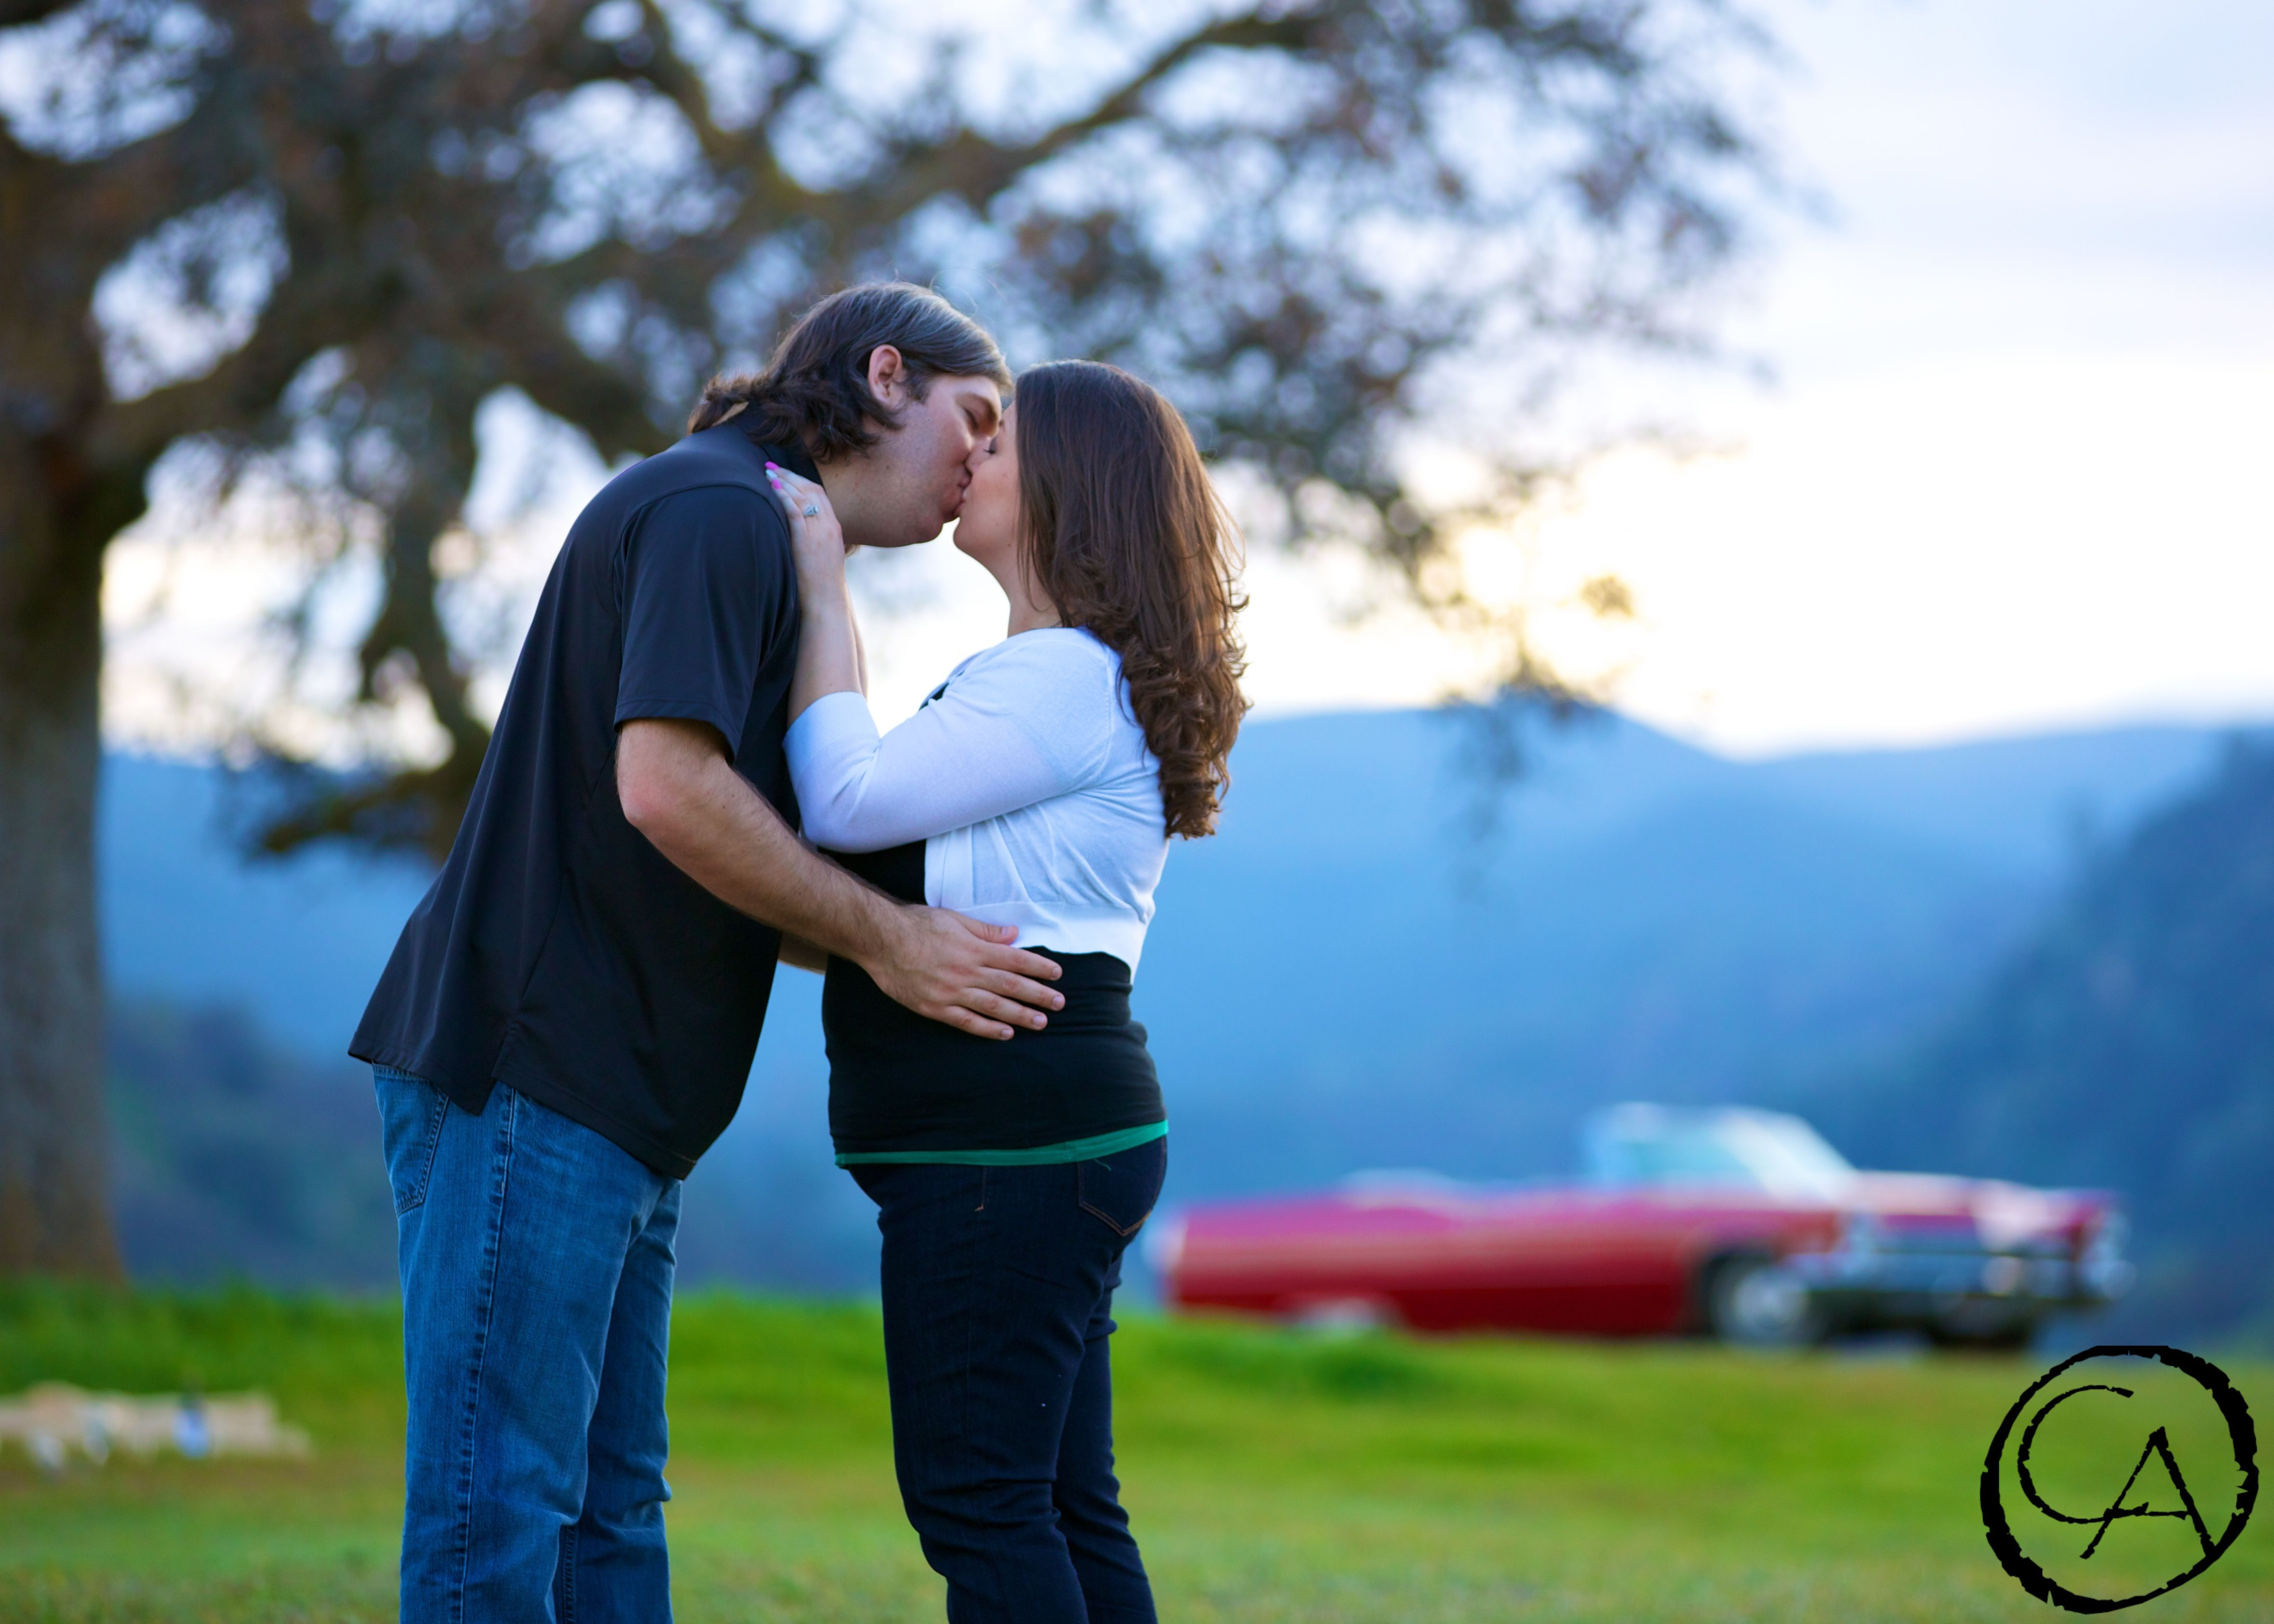 Engagement Shoot by one of the majestic oaks at Taber Ranch | By Christopher Armstrong Photography